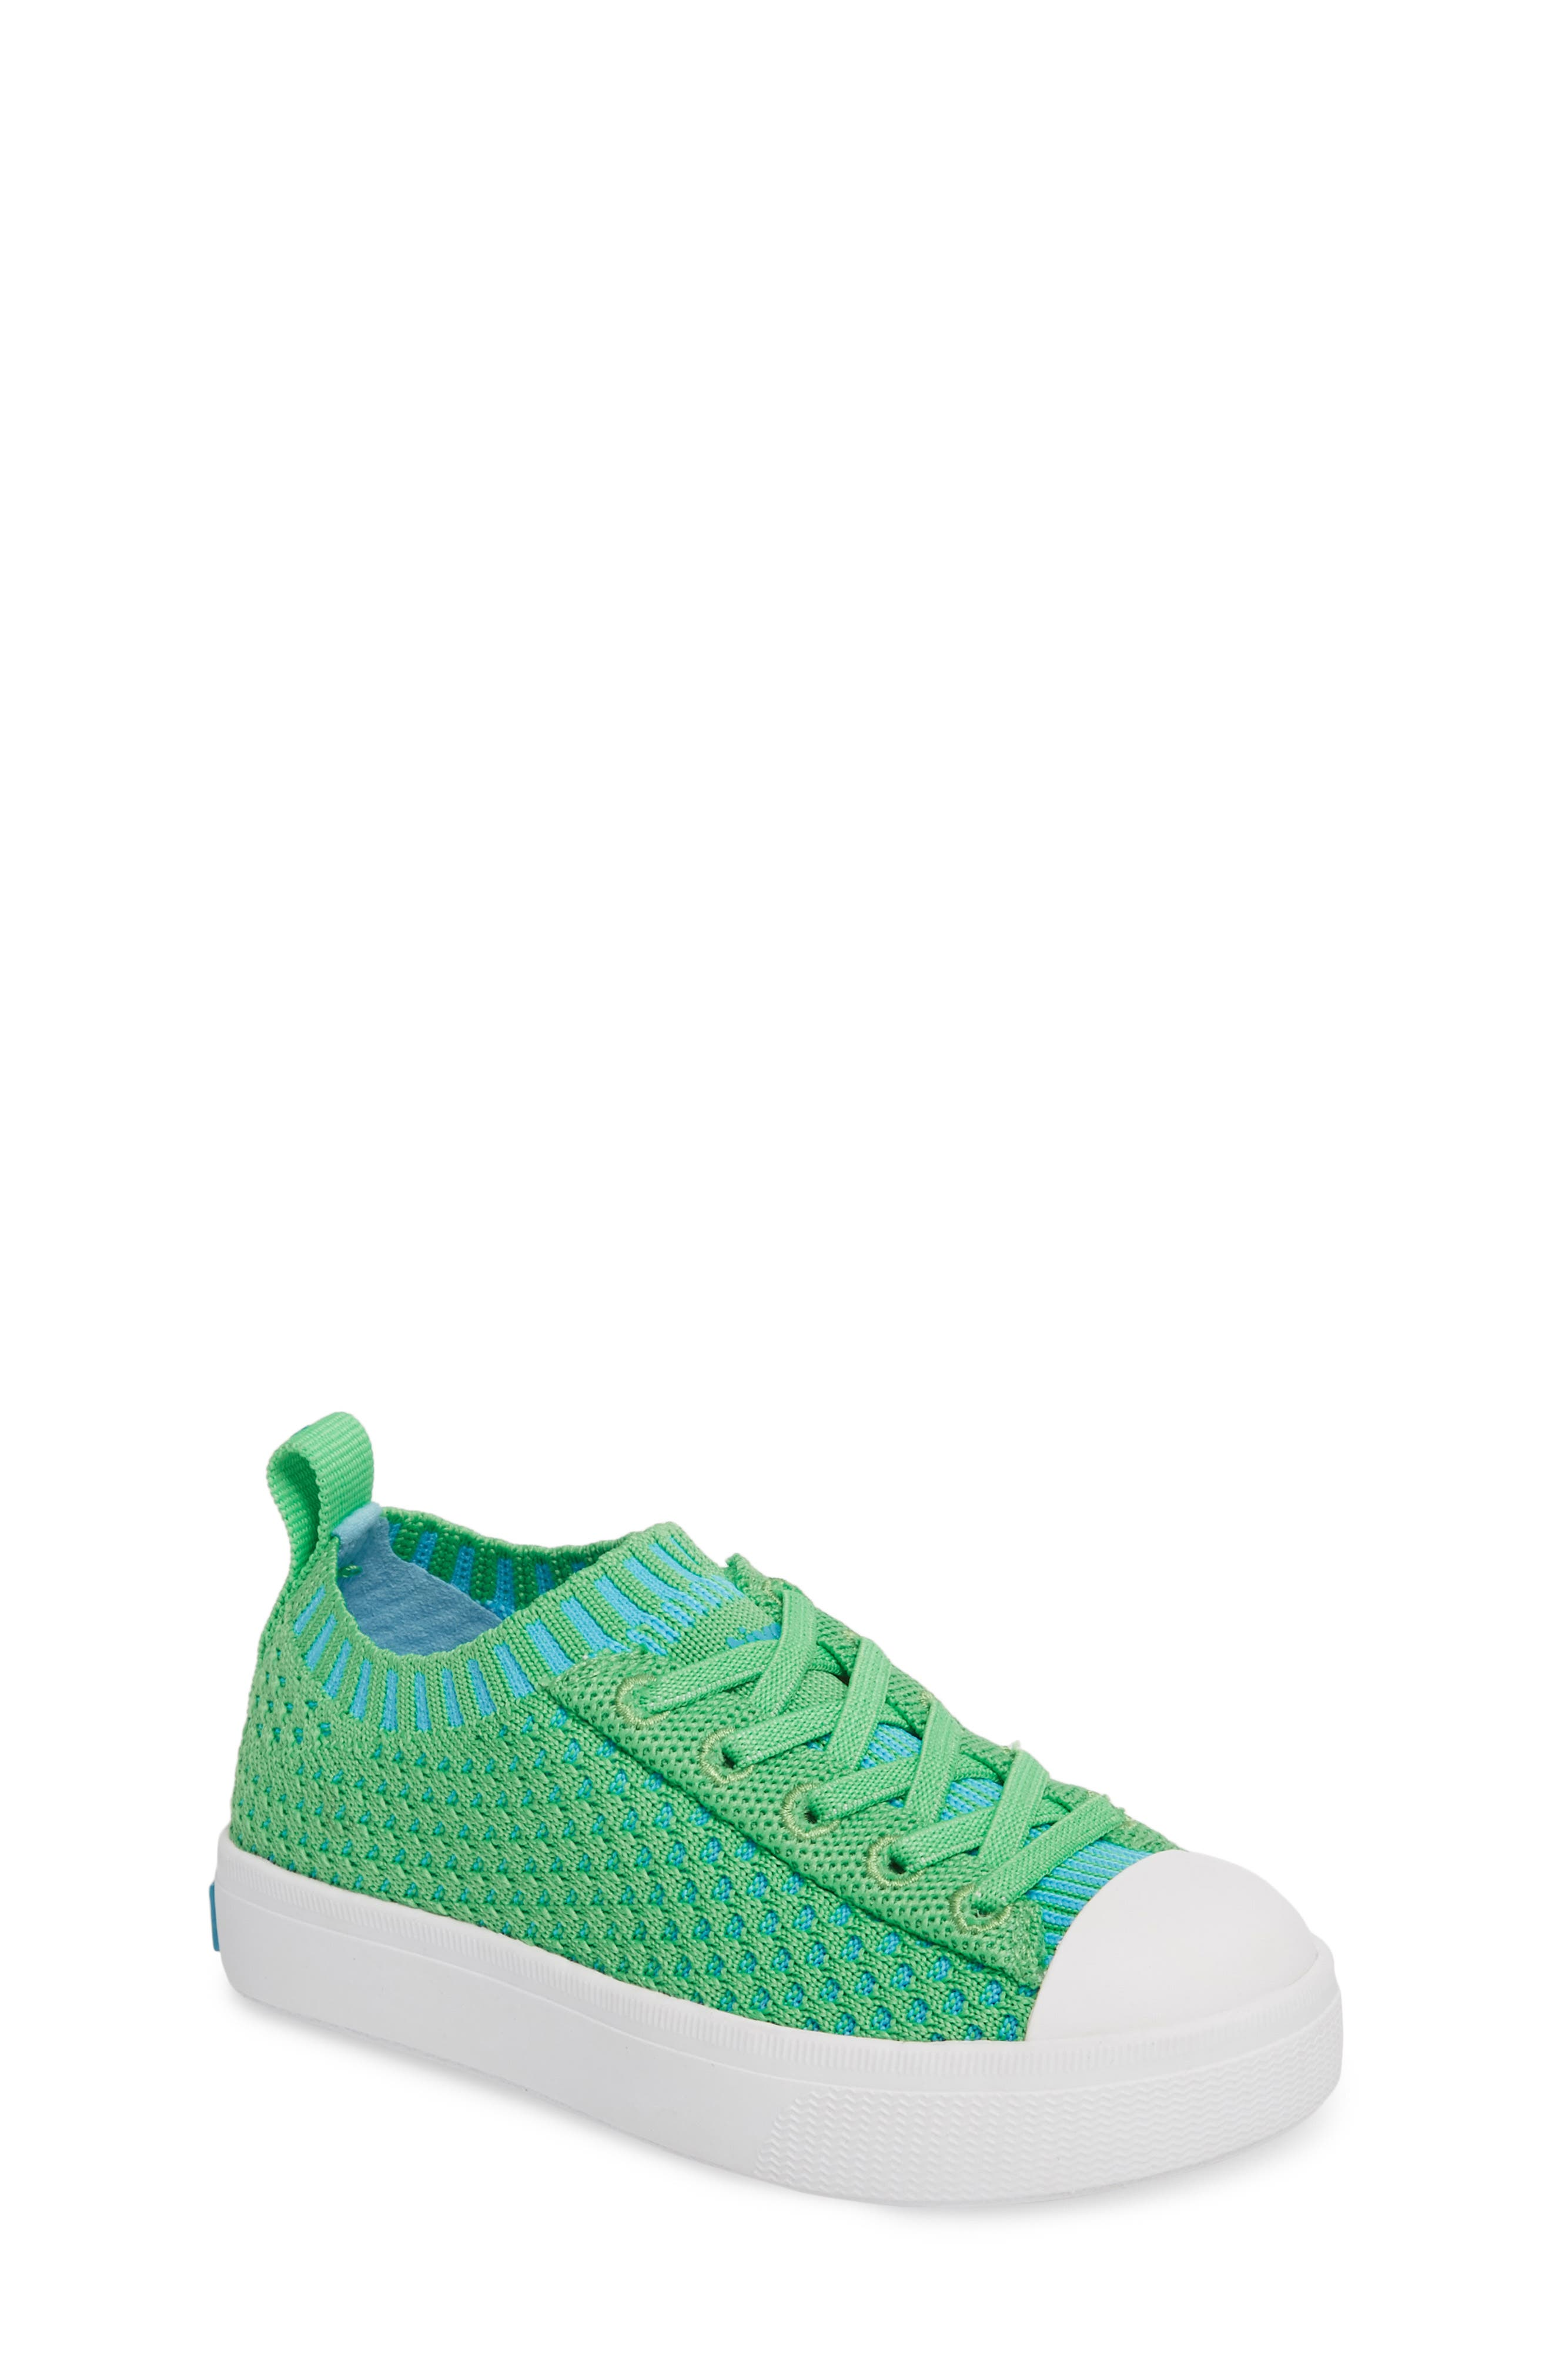 Native Jefferson 2.0 LiteKnit Sneaker,                             Main thumbnail 1, color,                             GRASS GREEN/ SHELL WHITE